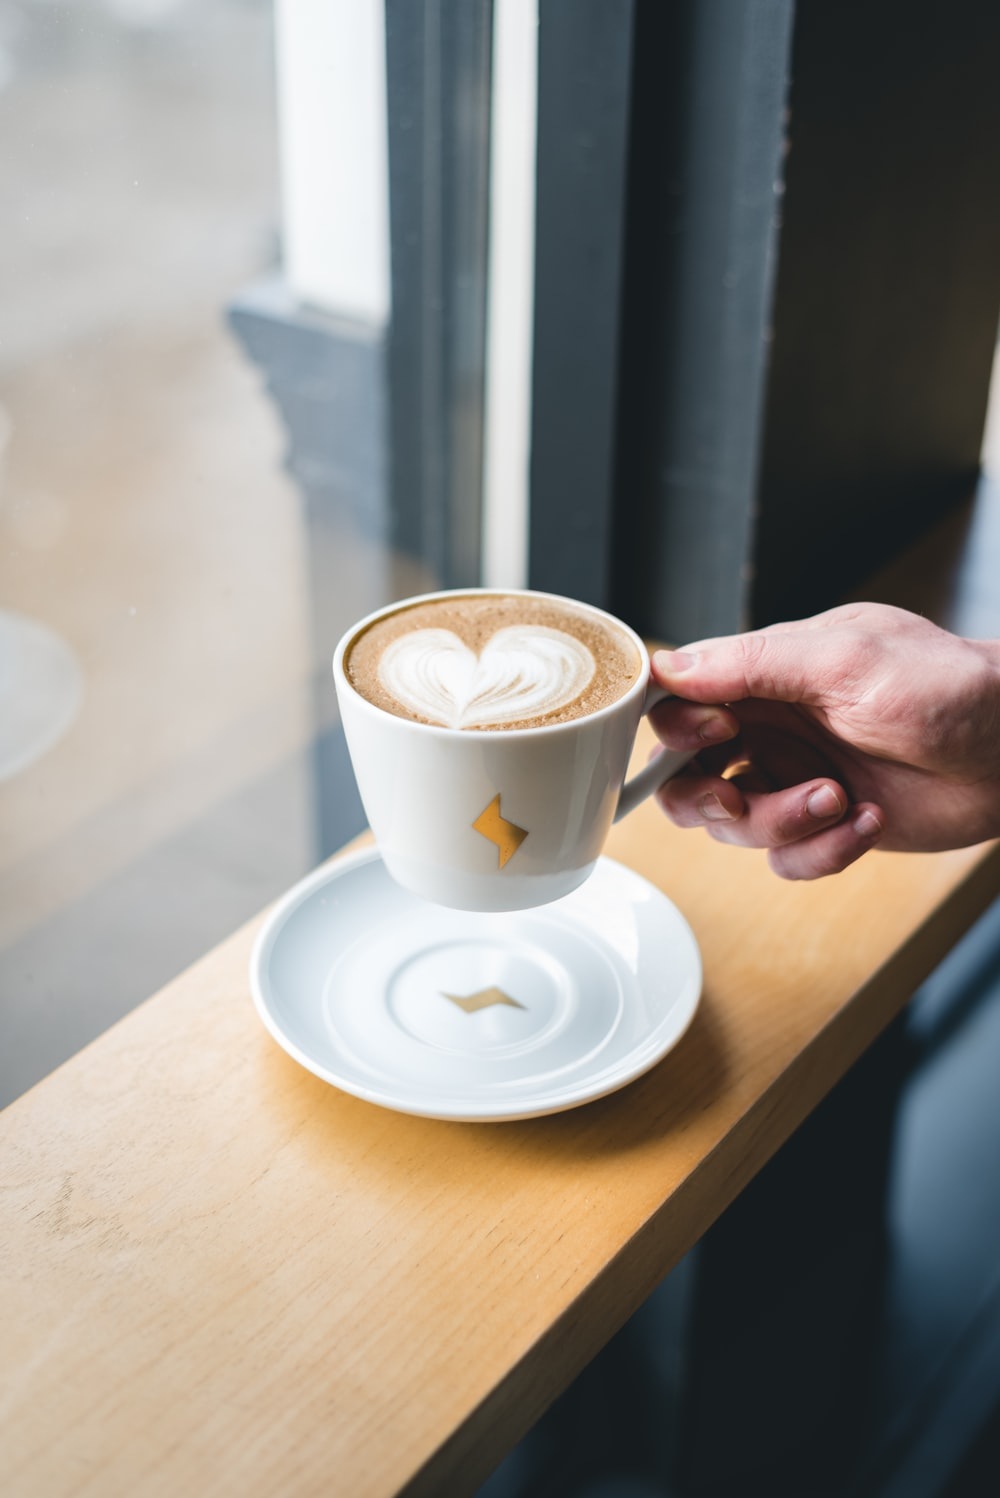 person holding white ceramic cup with saucer